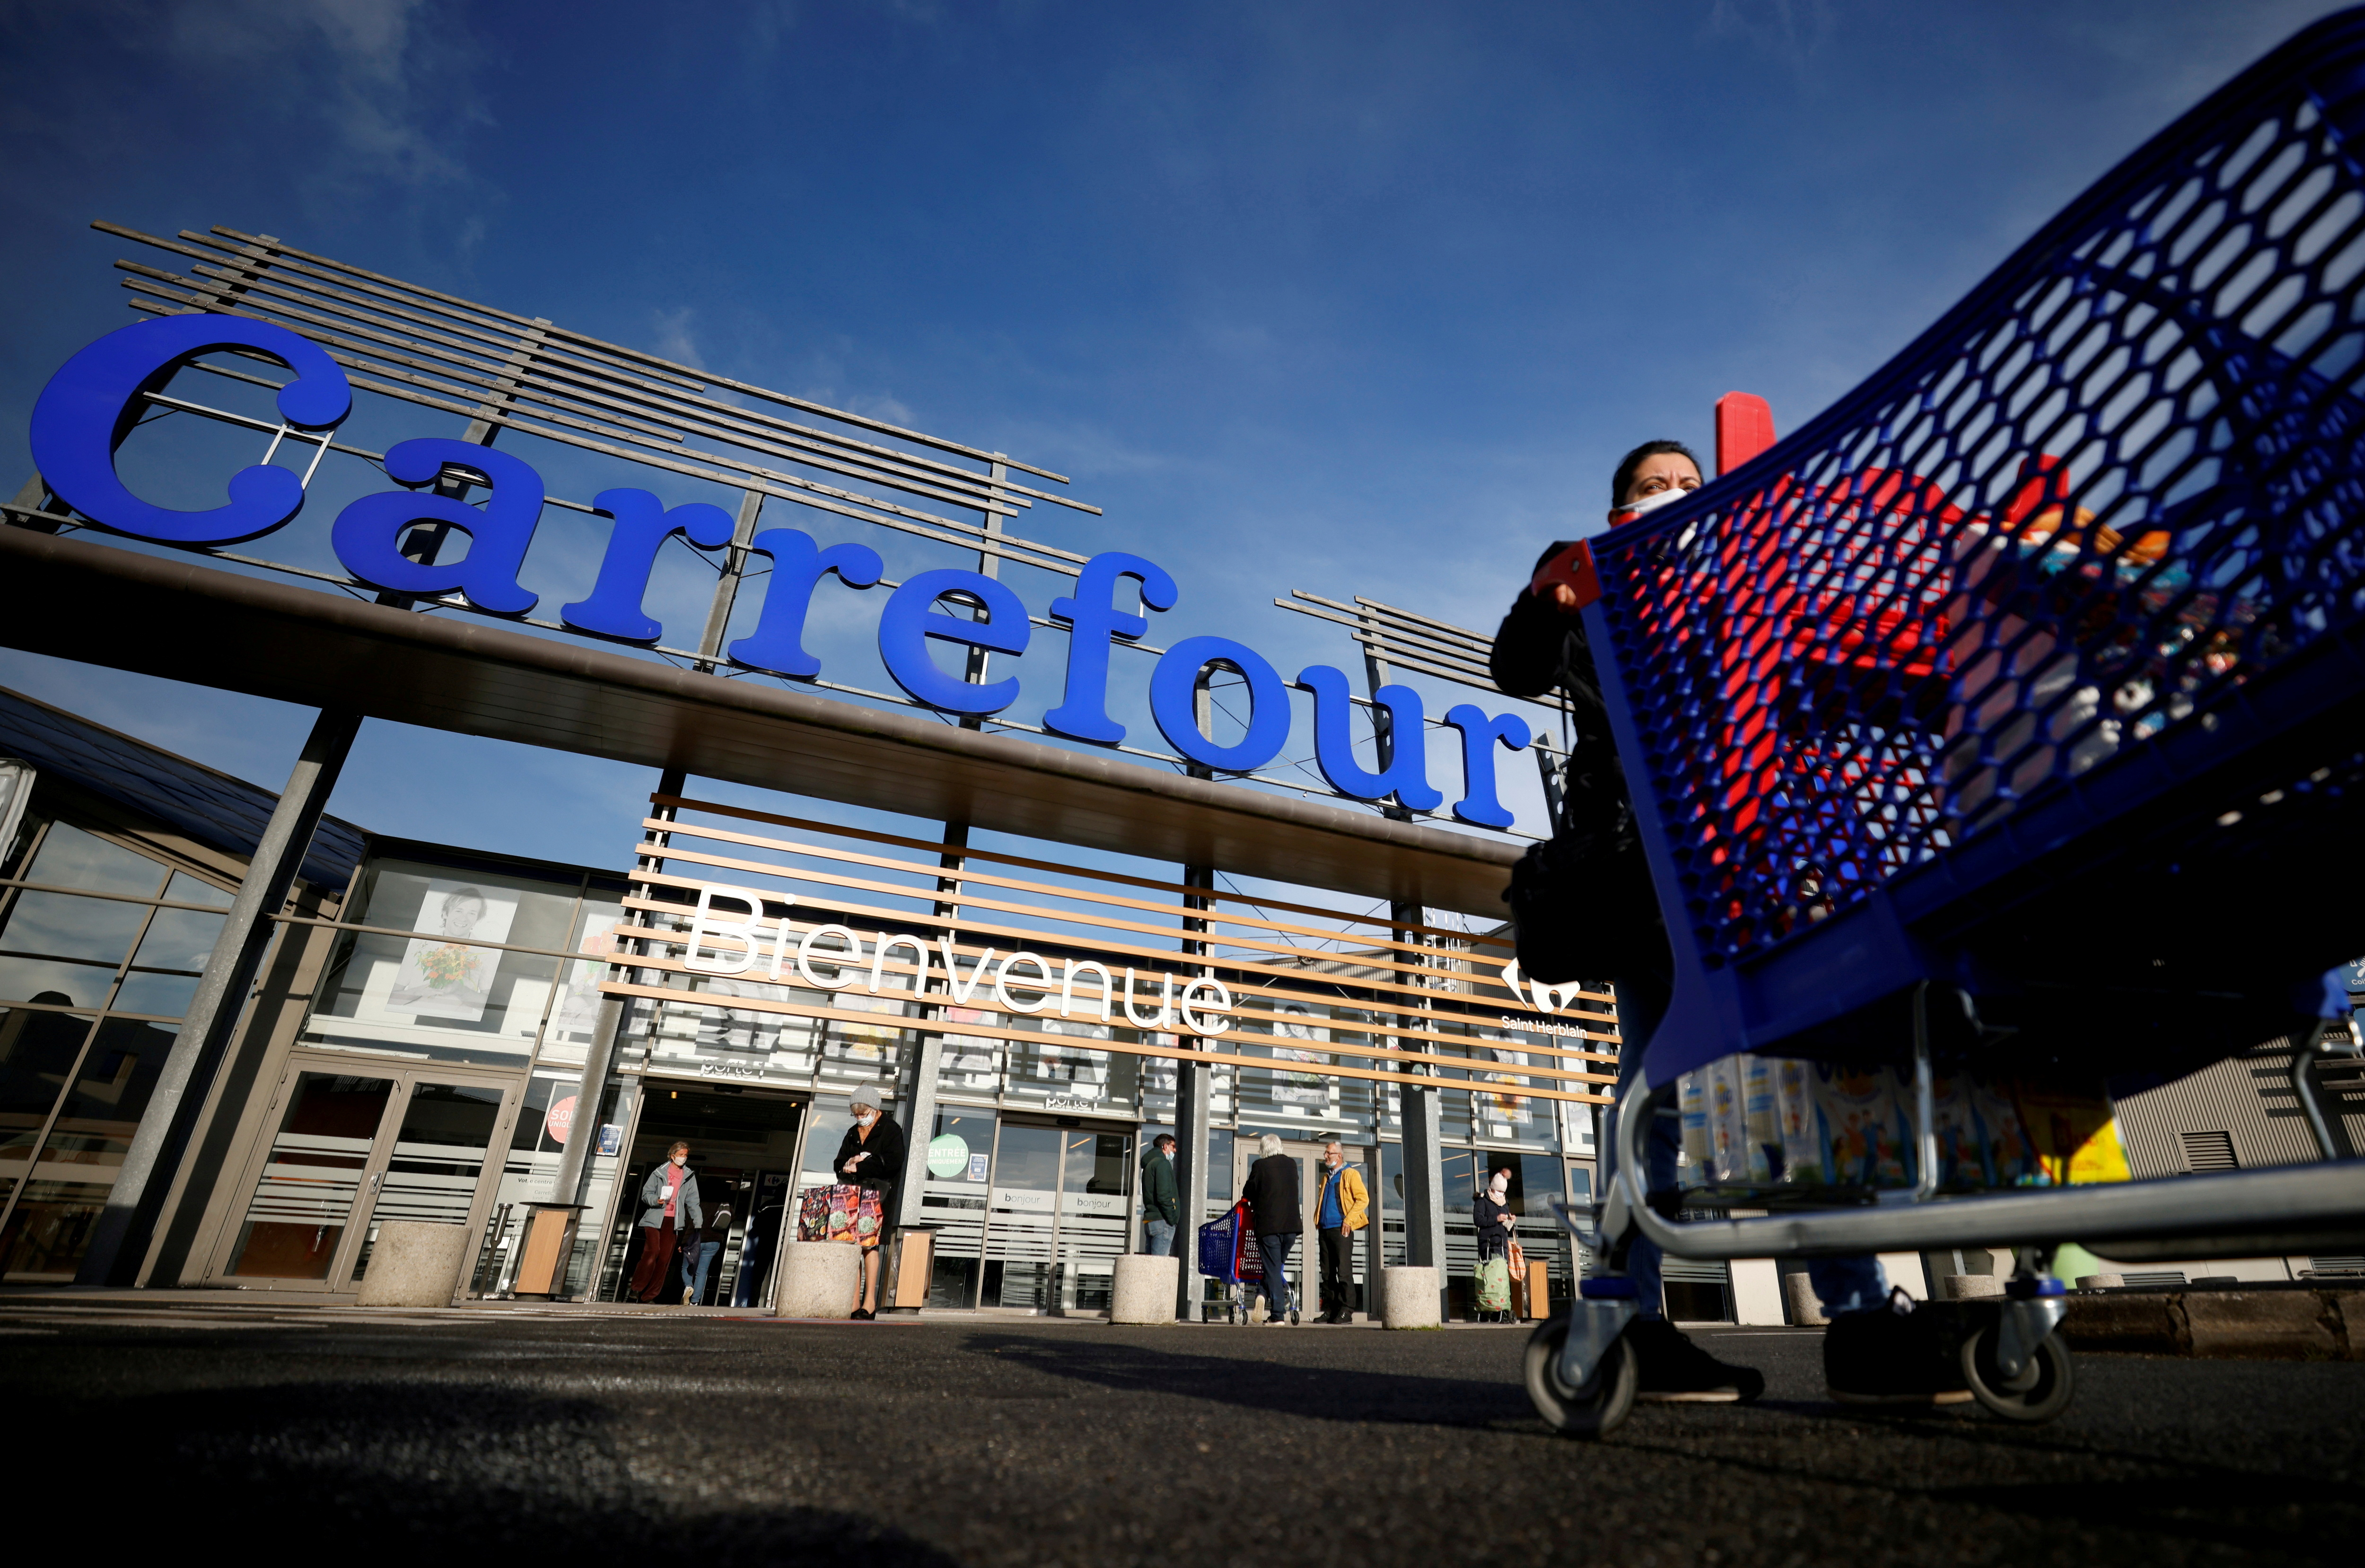 A customer pushes her shopping trolley in front of a Carrefour Hypermarket store in Saint-Herblain near Nantes, France January 15, 2021. REUTERS/Stephane Mahe/File Photo